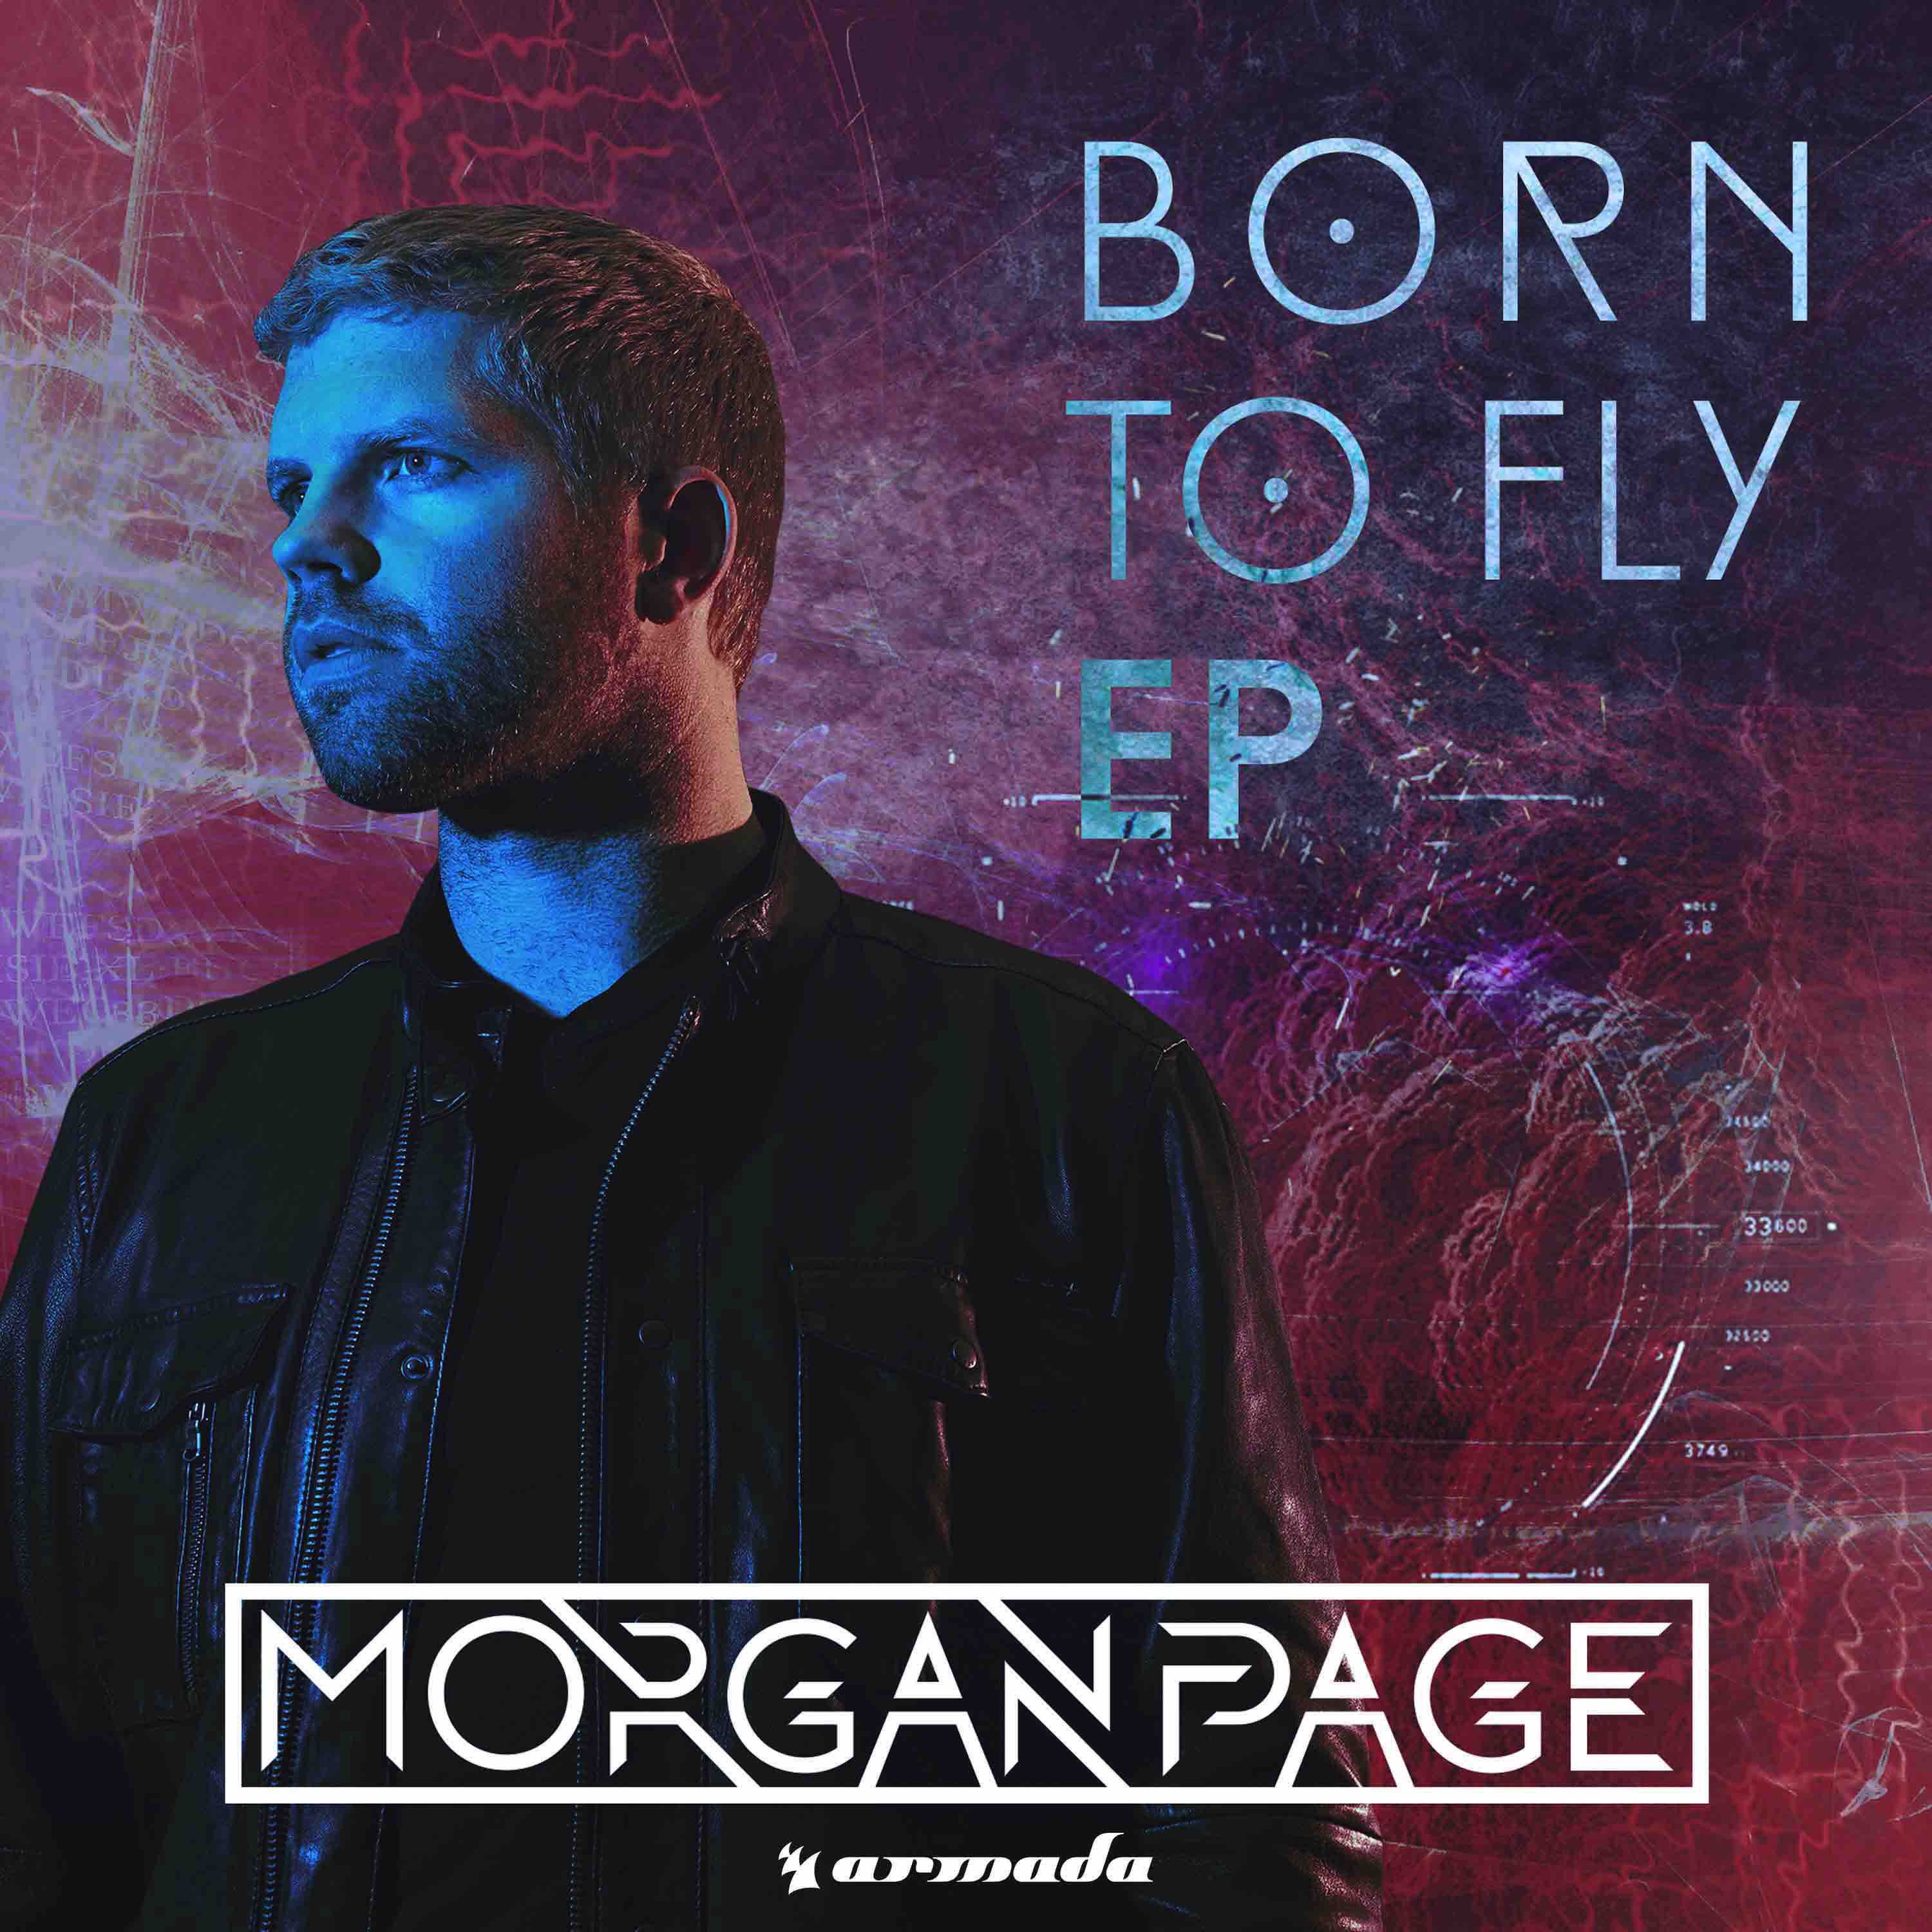 Morgan Page announces the first in a trilogy of EPs 'Born To Fly EP' on Armada